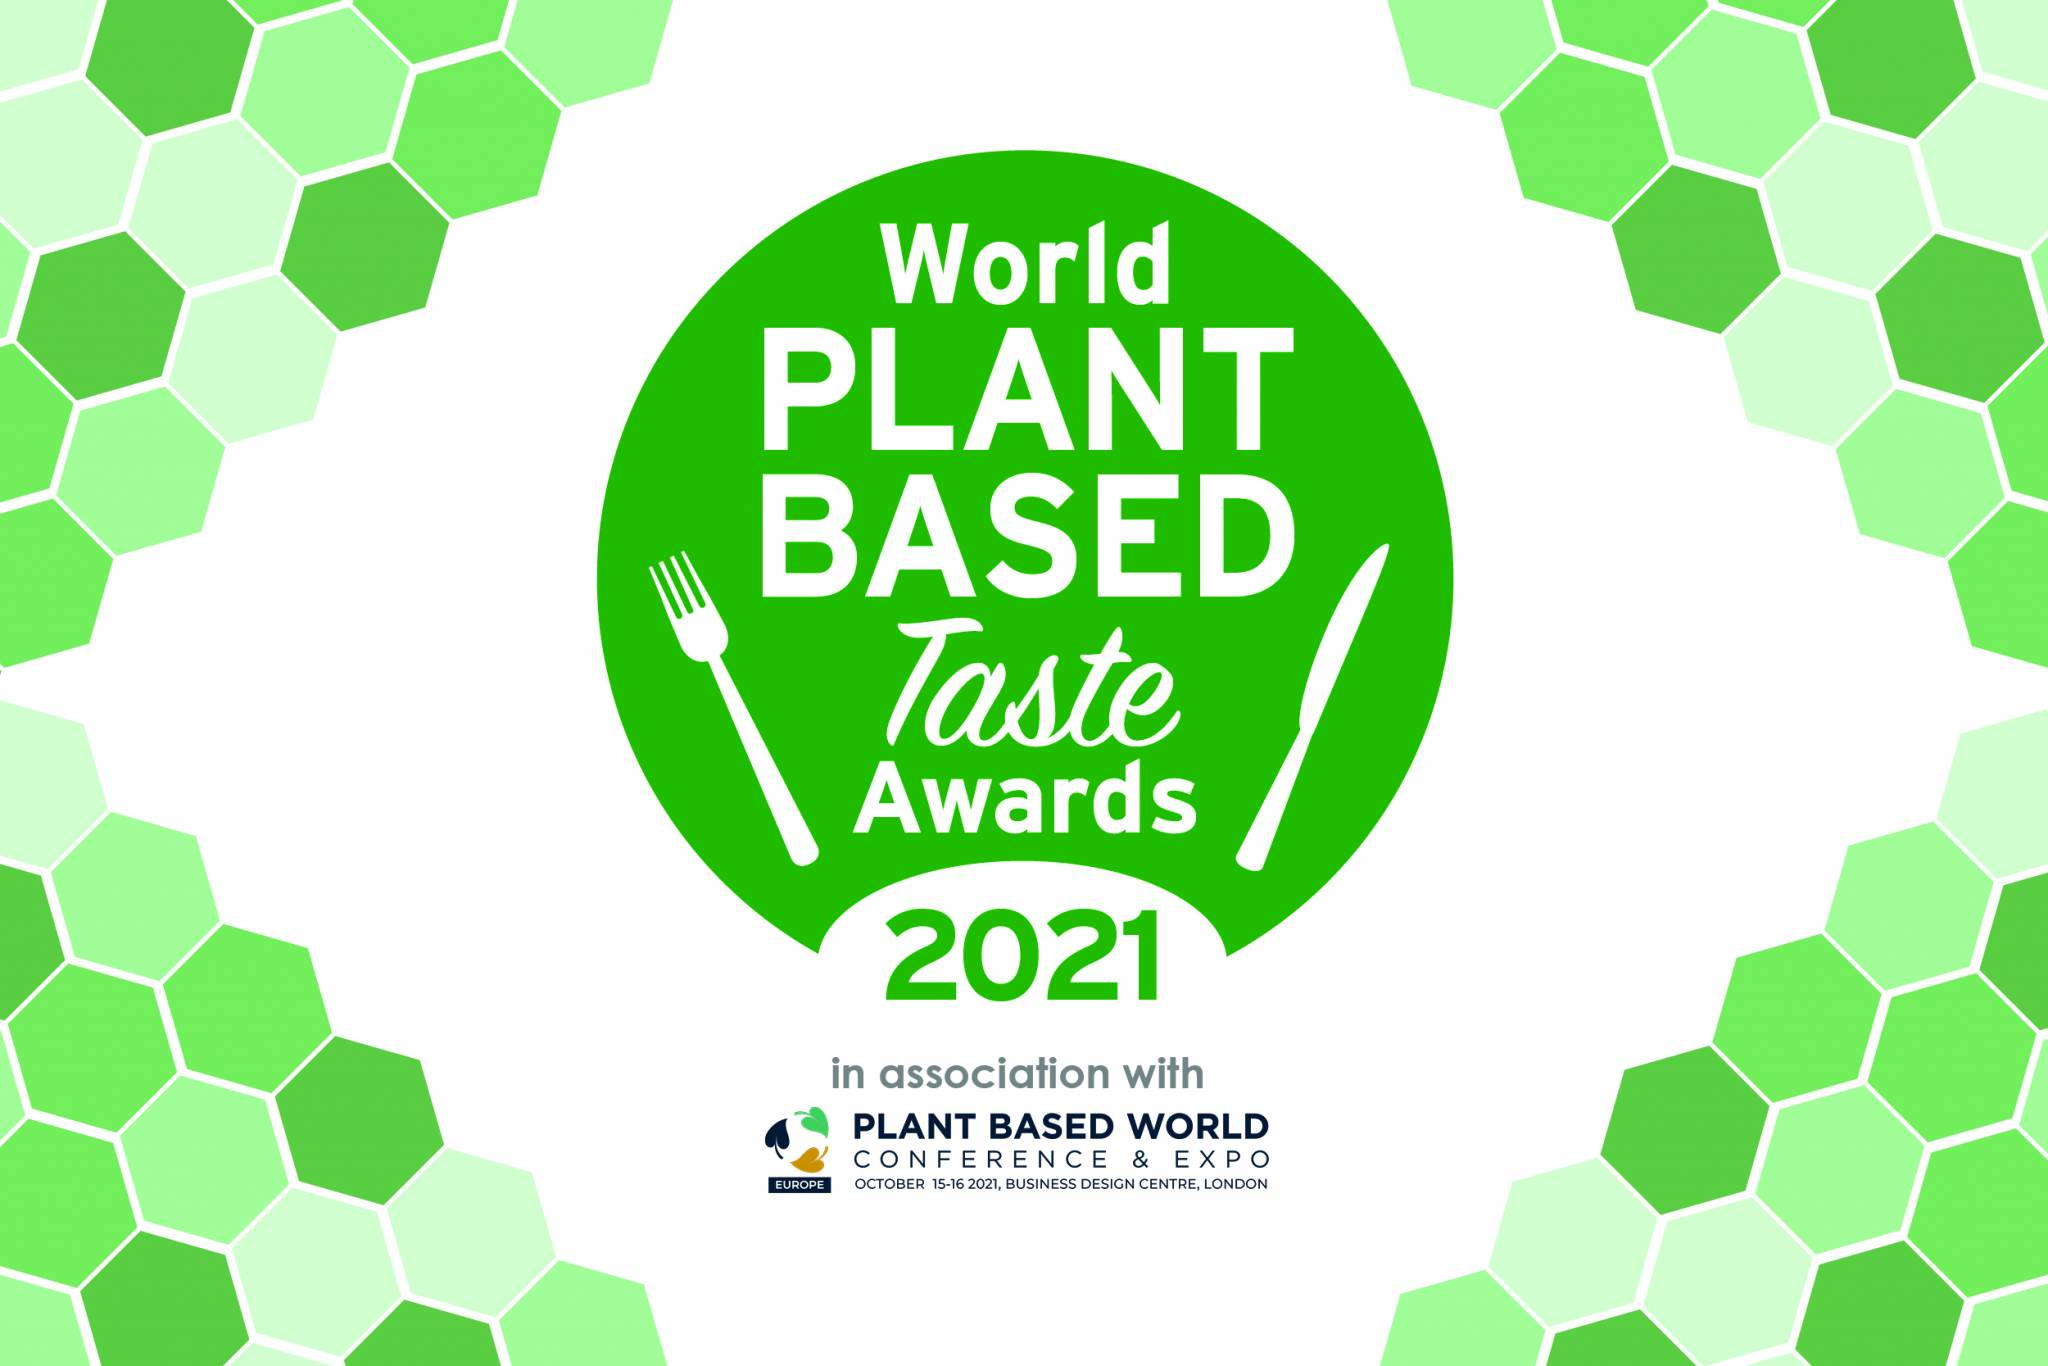 The 2021 World Plant-Based Taste Awards finalists announced